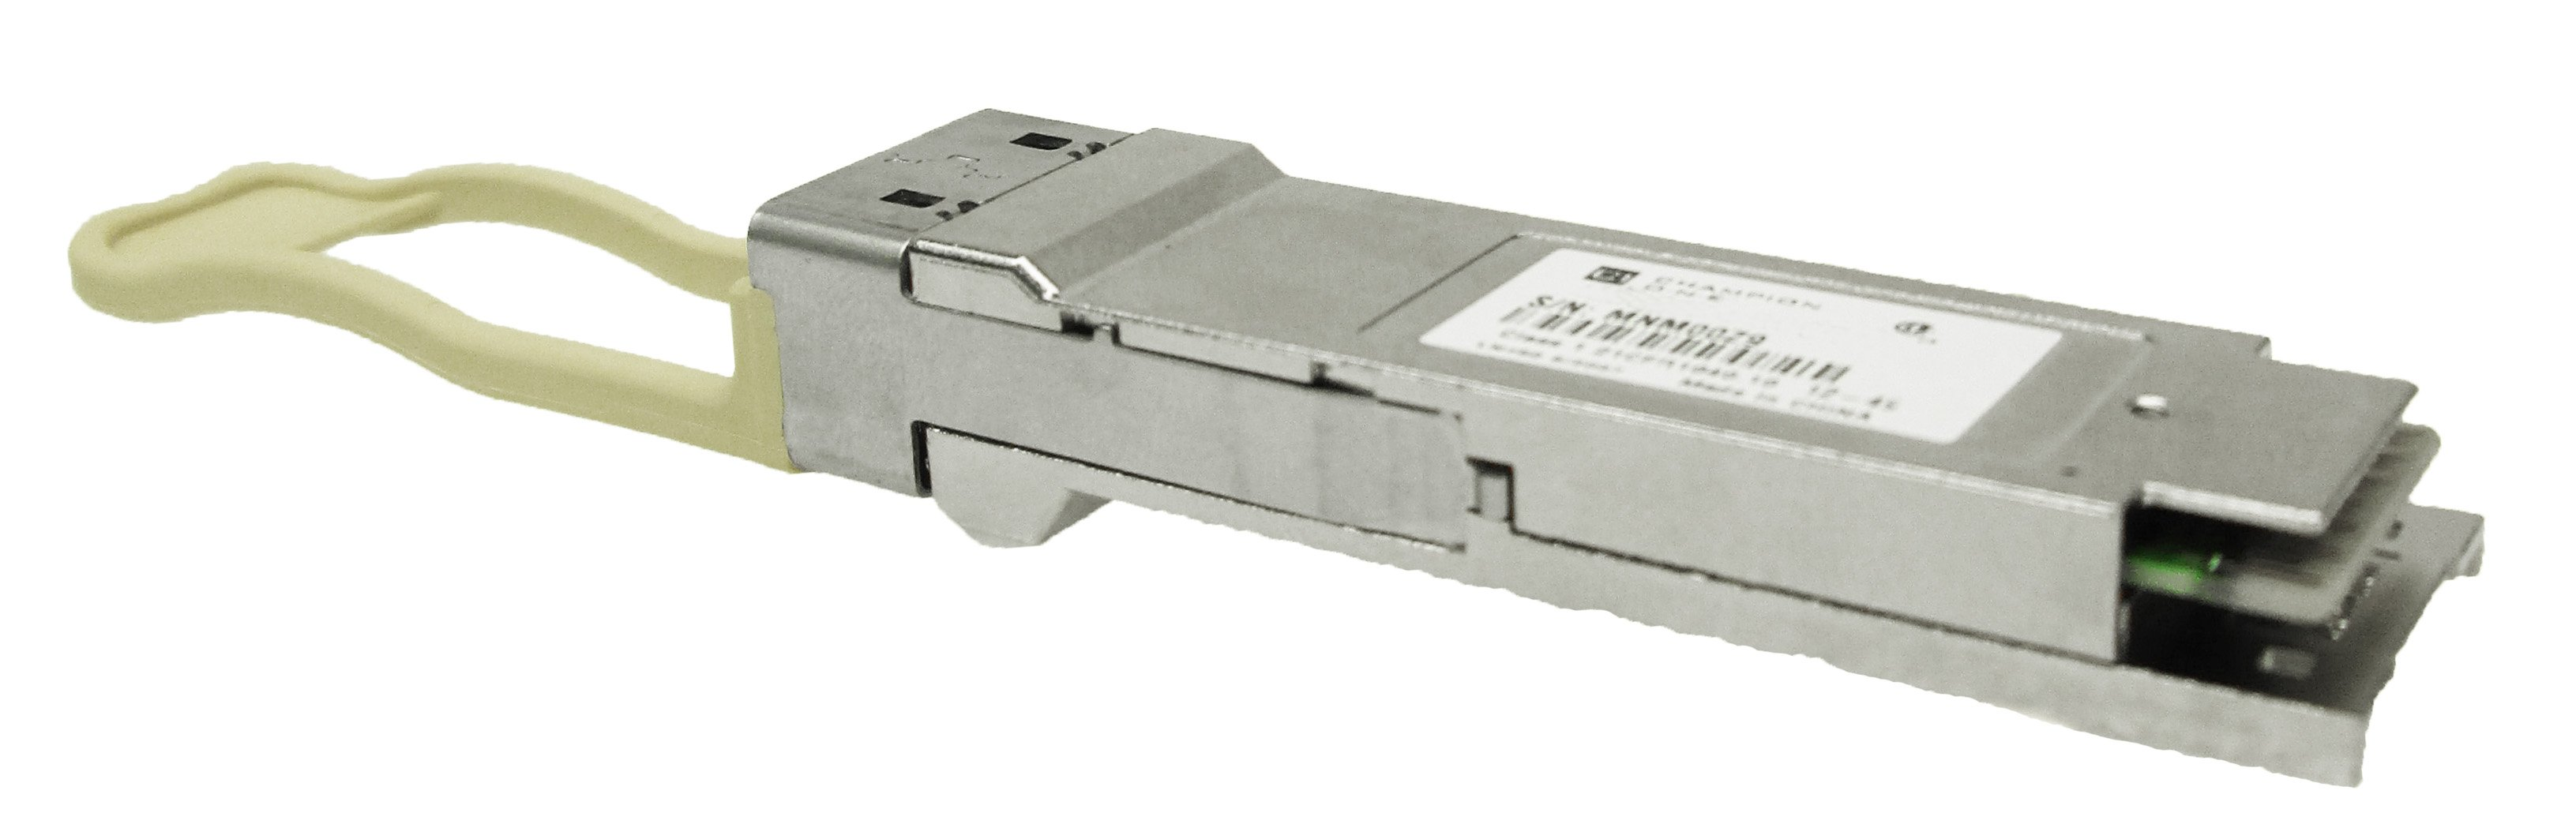 40GBase-ER4 QSFP+, 40km, SMF LC connector